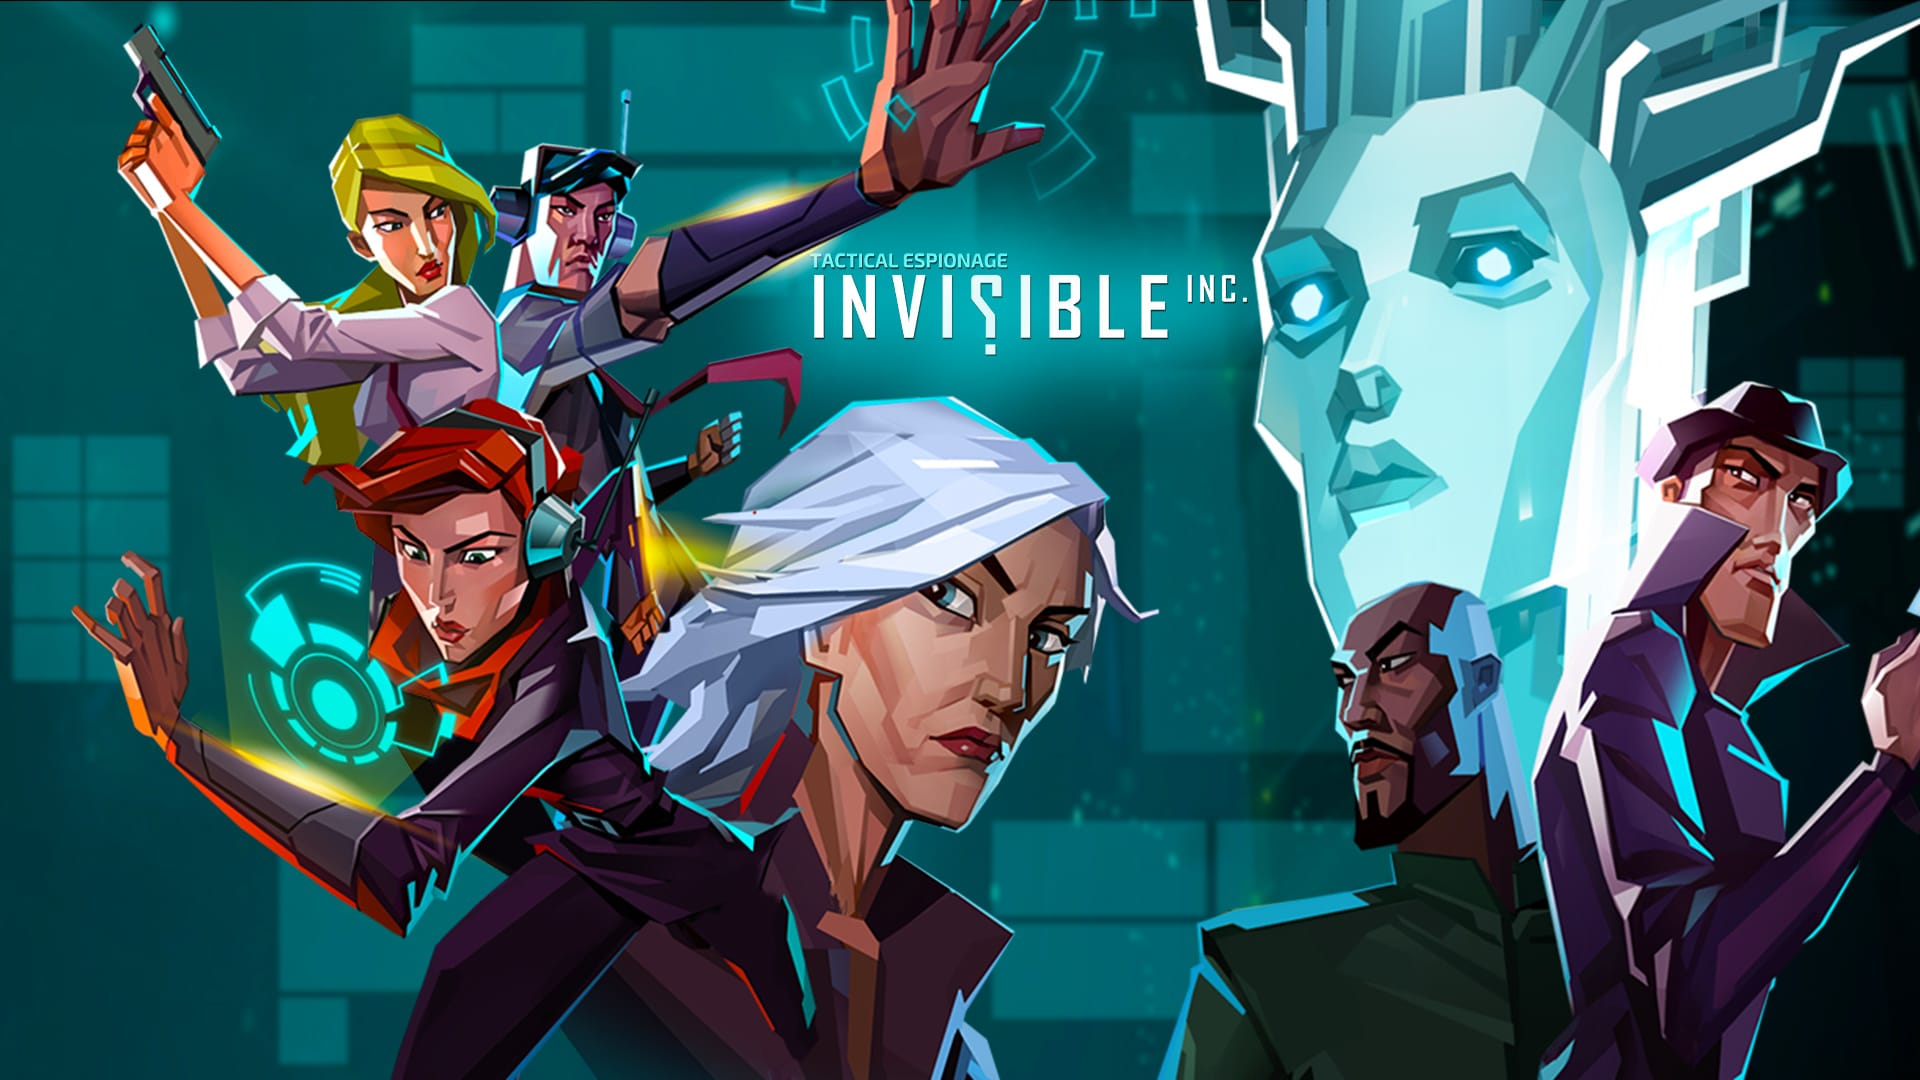 Invisible's poster